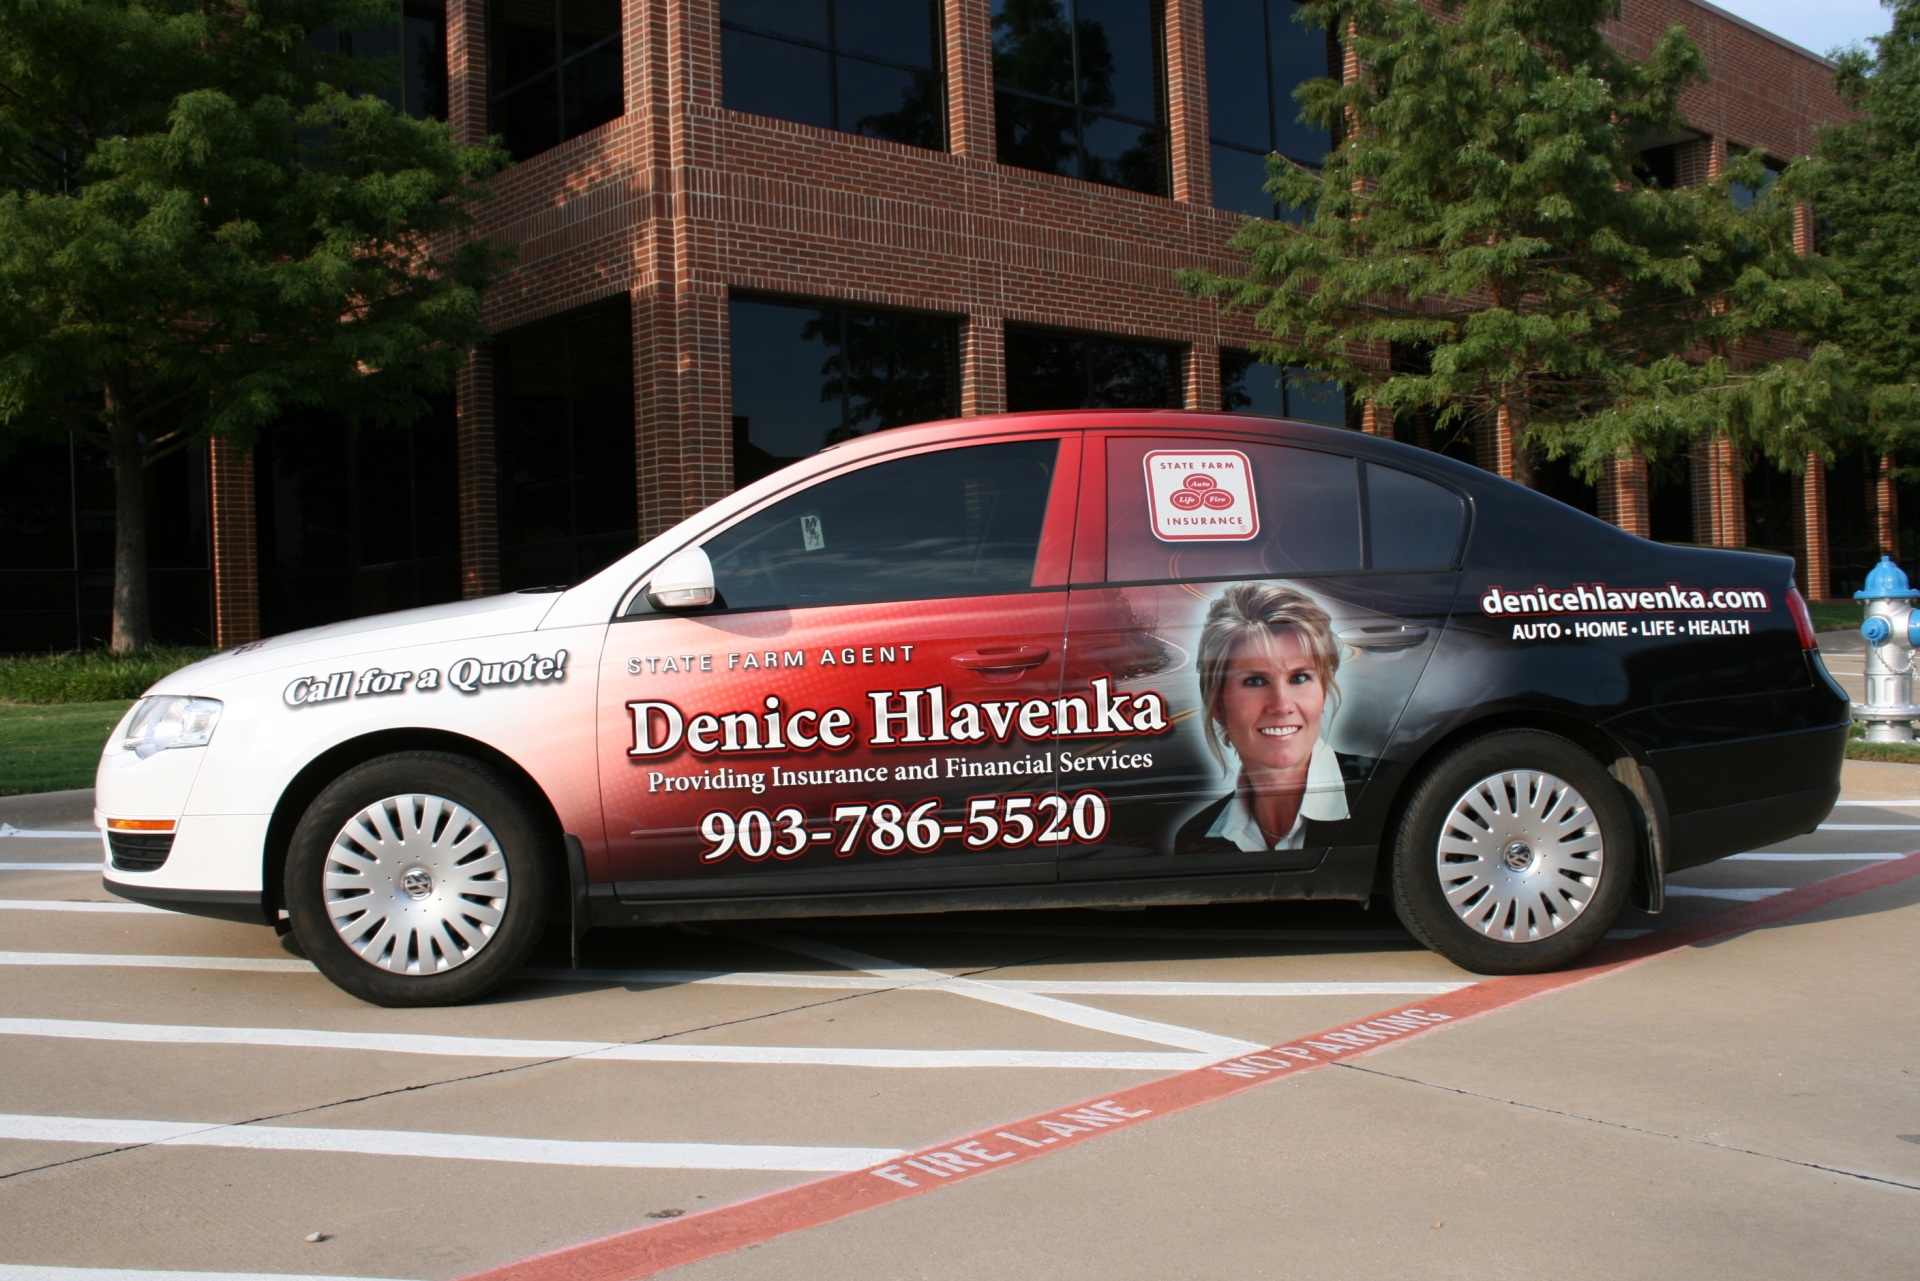 State Farm Agent Denice Hlavenka, State Farm Vehicle Wraps, vehicle wraps dallas tx